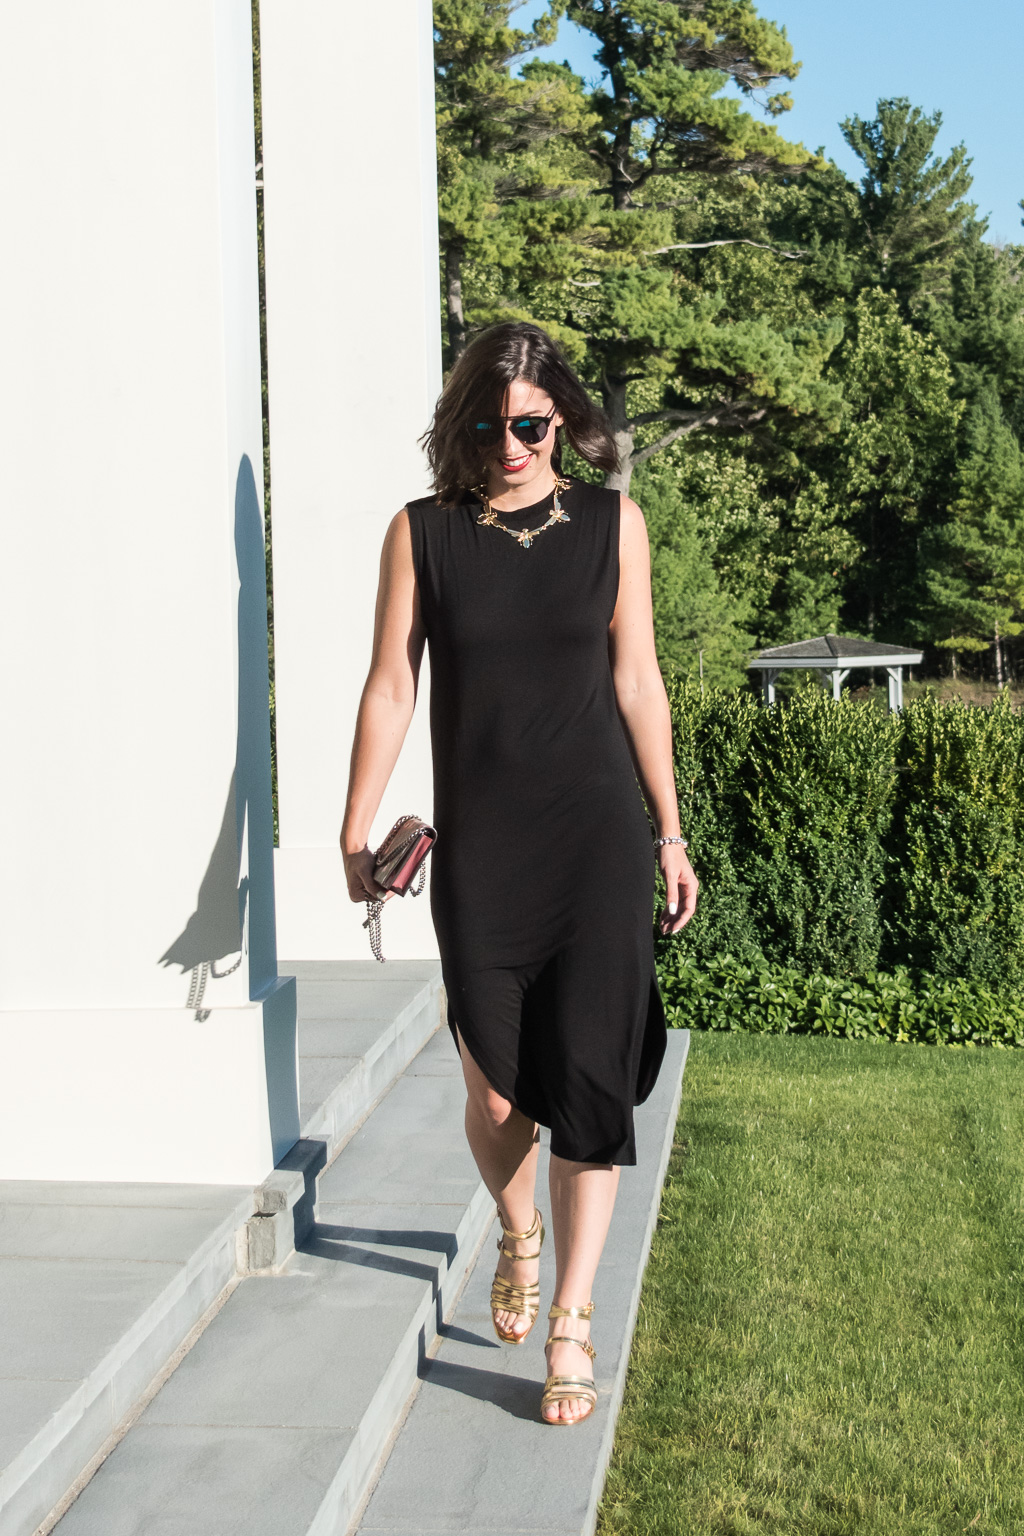 Lake House Getaway in Harbor Springs, Michigan | H&M Black Cotton Dress, Gucci GG Blooms Supreme Chain Wallet, Dior Black So Real Sunglasses, Zara Gold Heeled Sandals